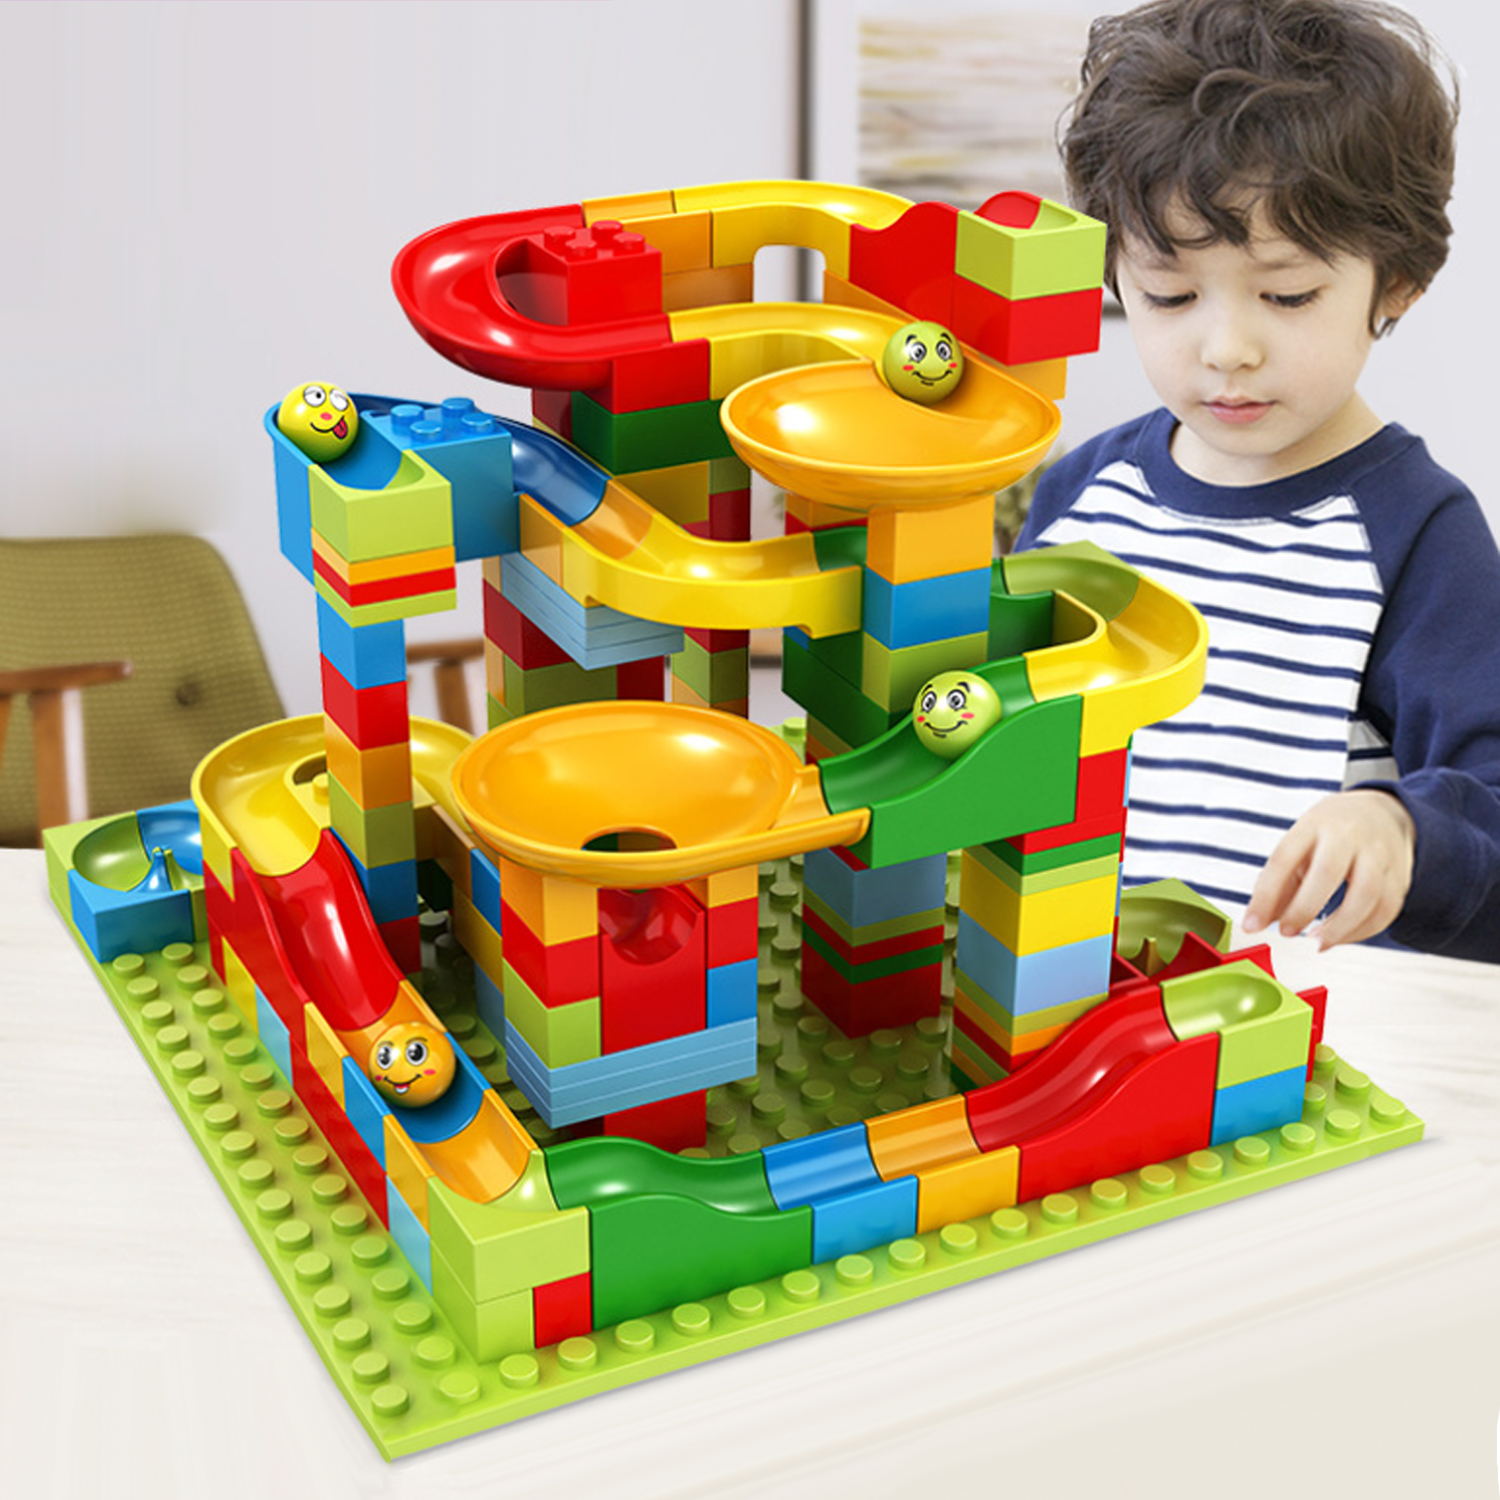 Besegad 165PCS DIY Marble Race Building Blocks Run Maze Ball Track Funnel Slide Bricks Toy For Children Birthday Christmas Gift